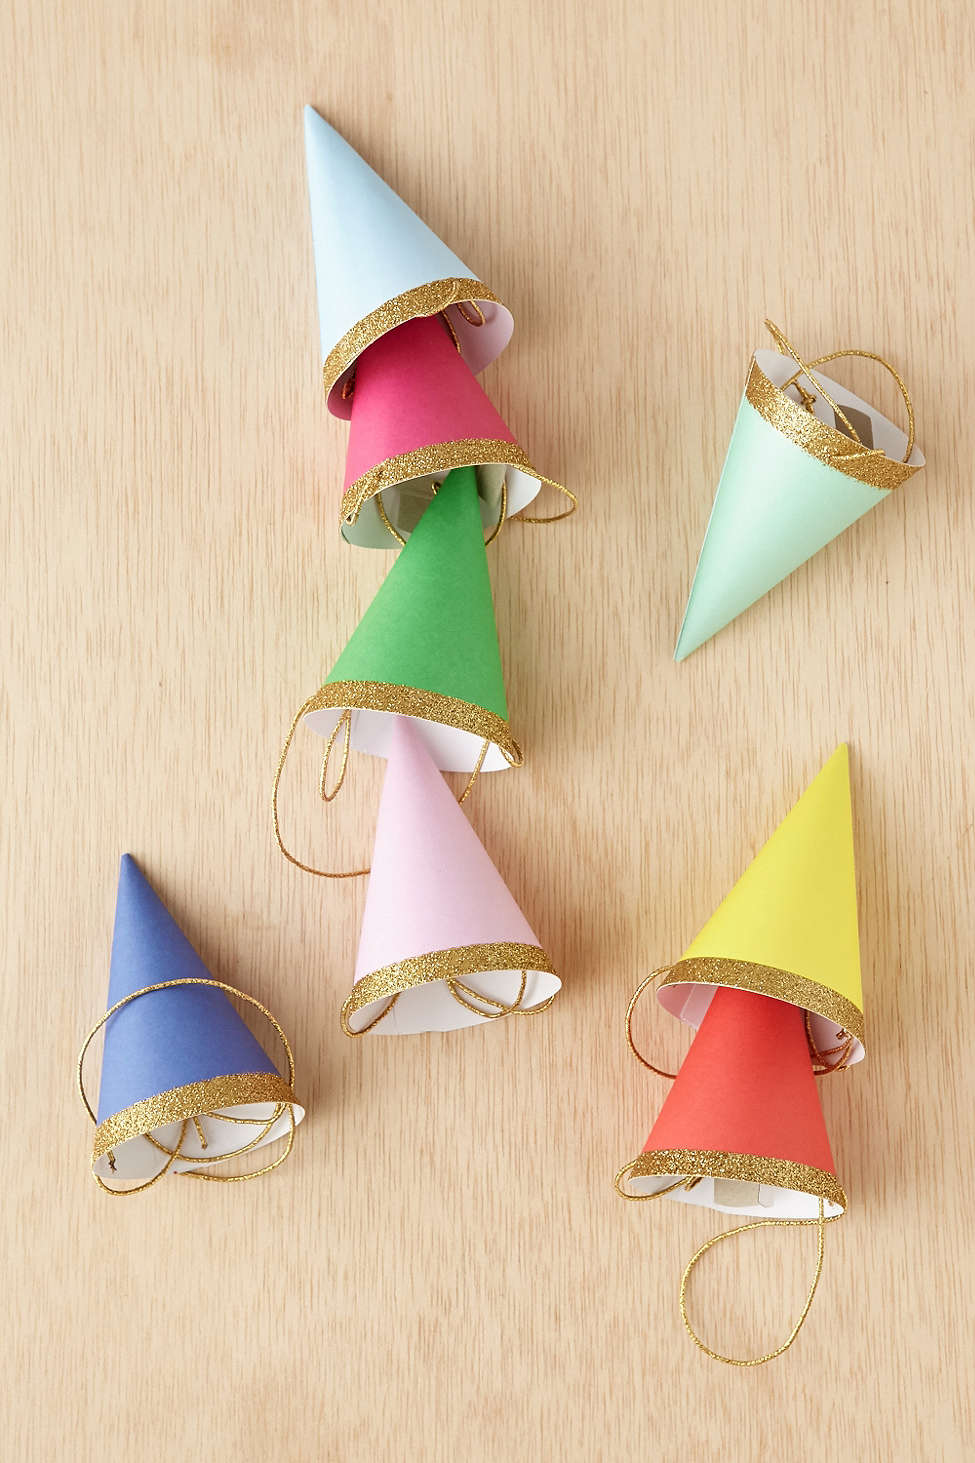 Party hats from Urban Outfitters